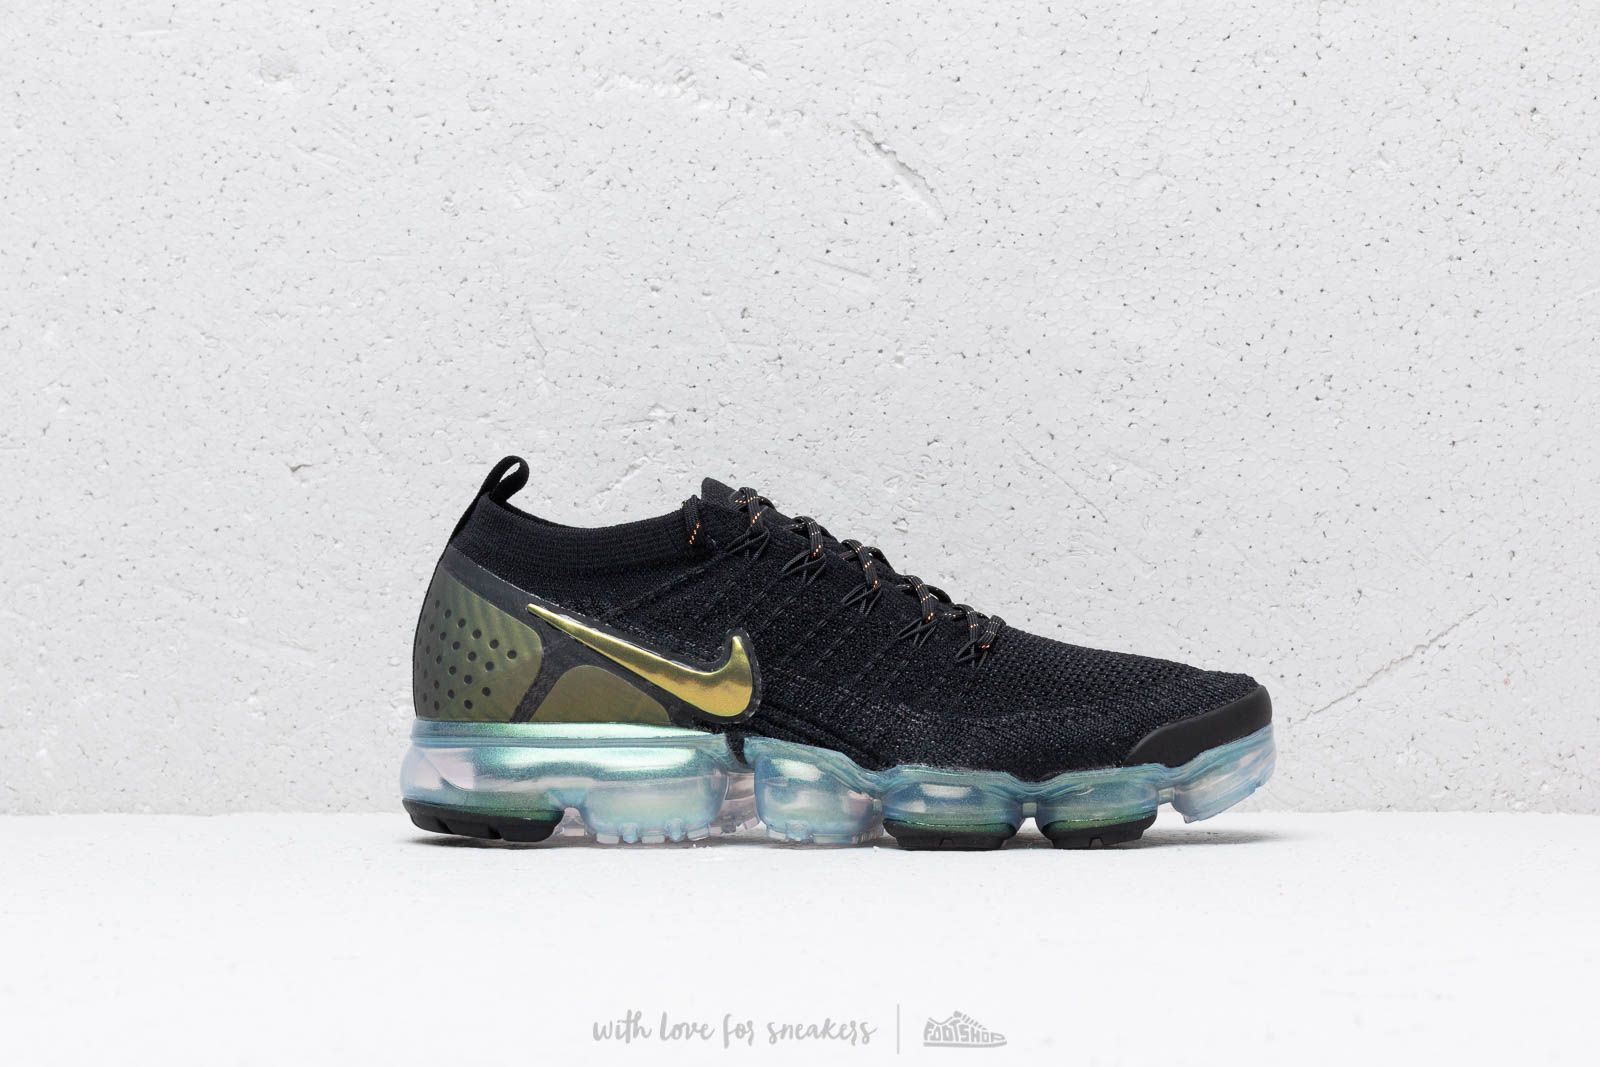 san francisco 7805a b60af Nike Air Vapormax Flyknit 2 Black/ Multi-Color-Metallic ...